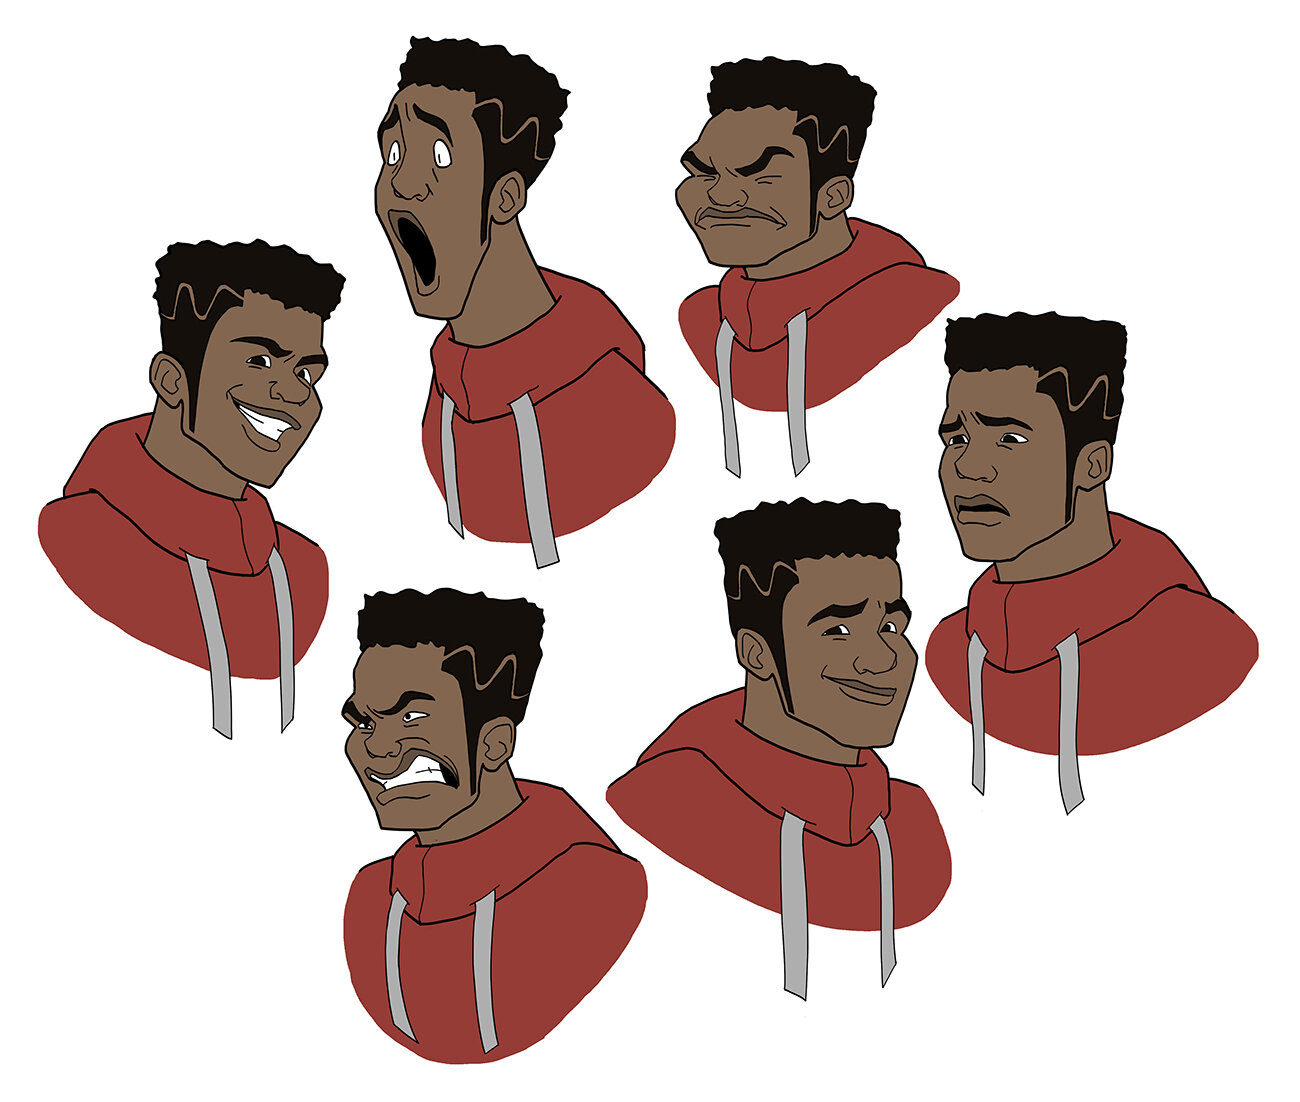 Micah Expression Sheet 2 for web.jpg